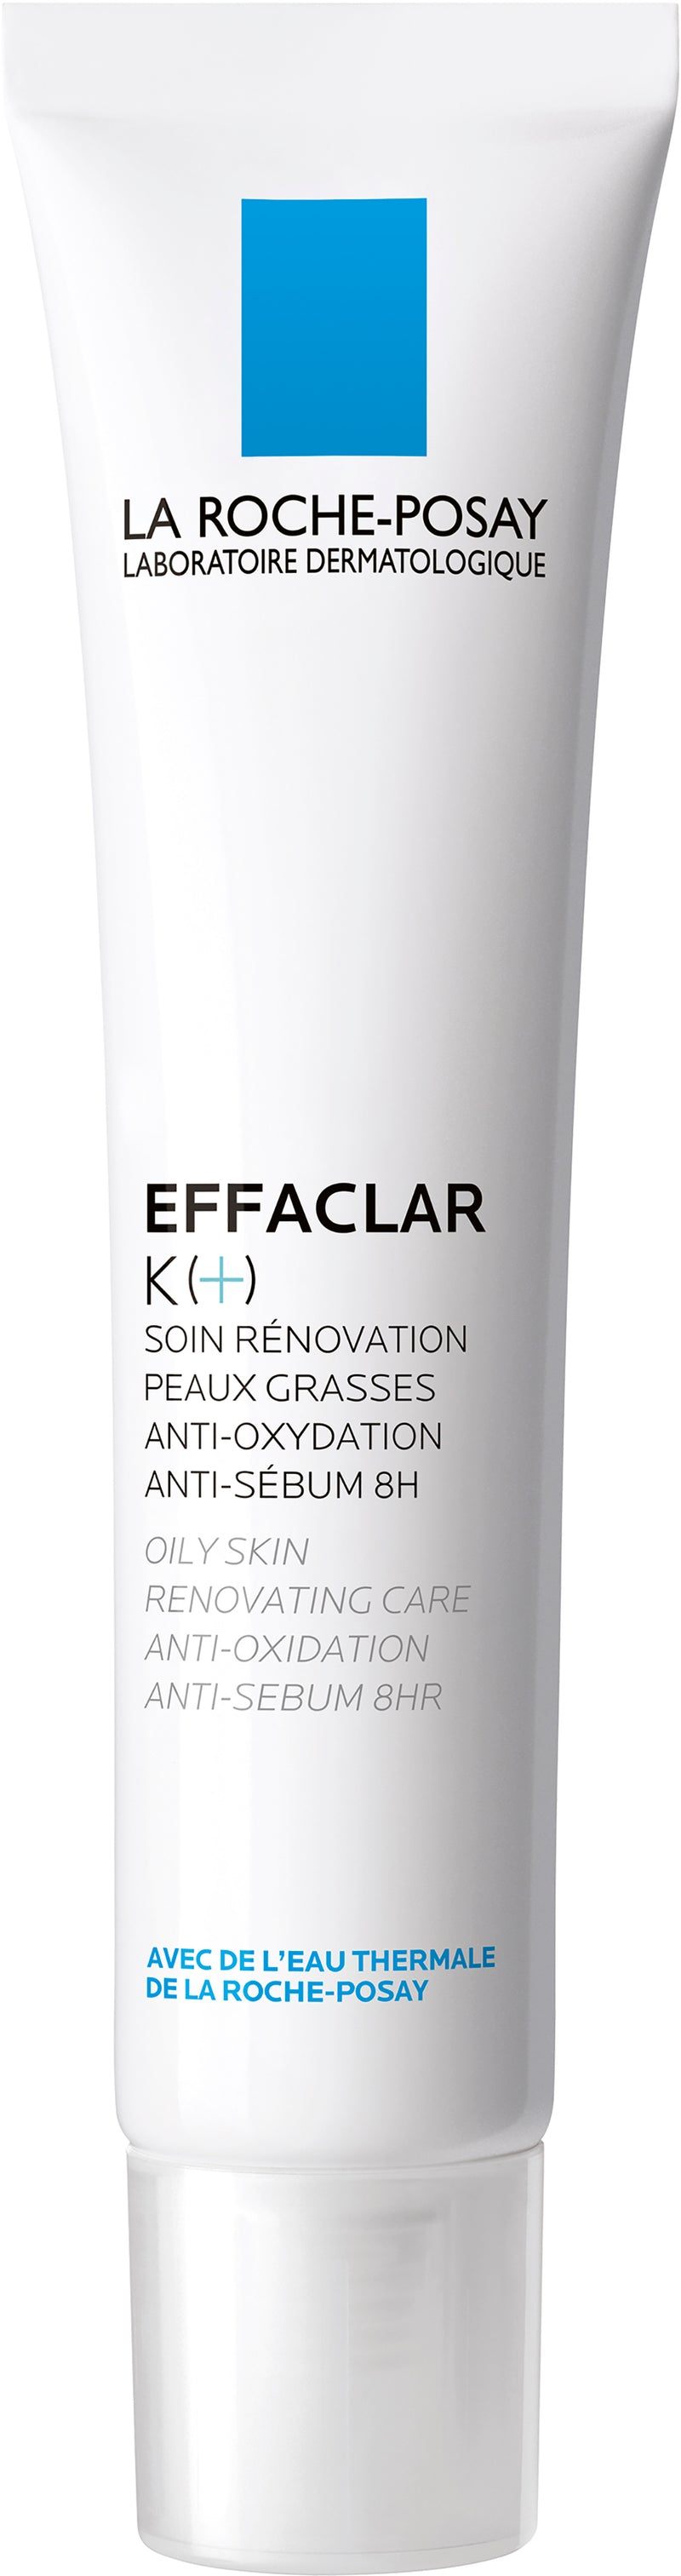 Effaclar K (+) Anti Blackhead Moisturiser 40ml